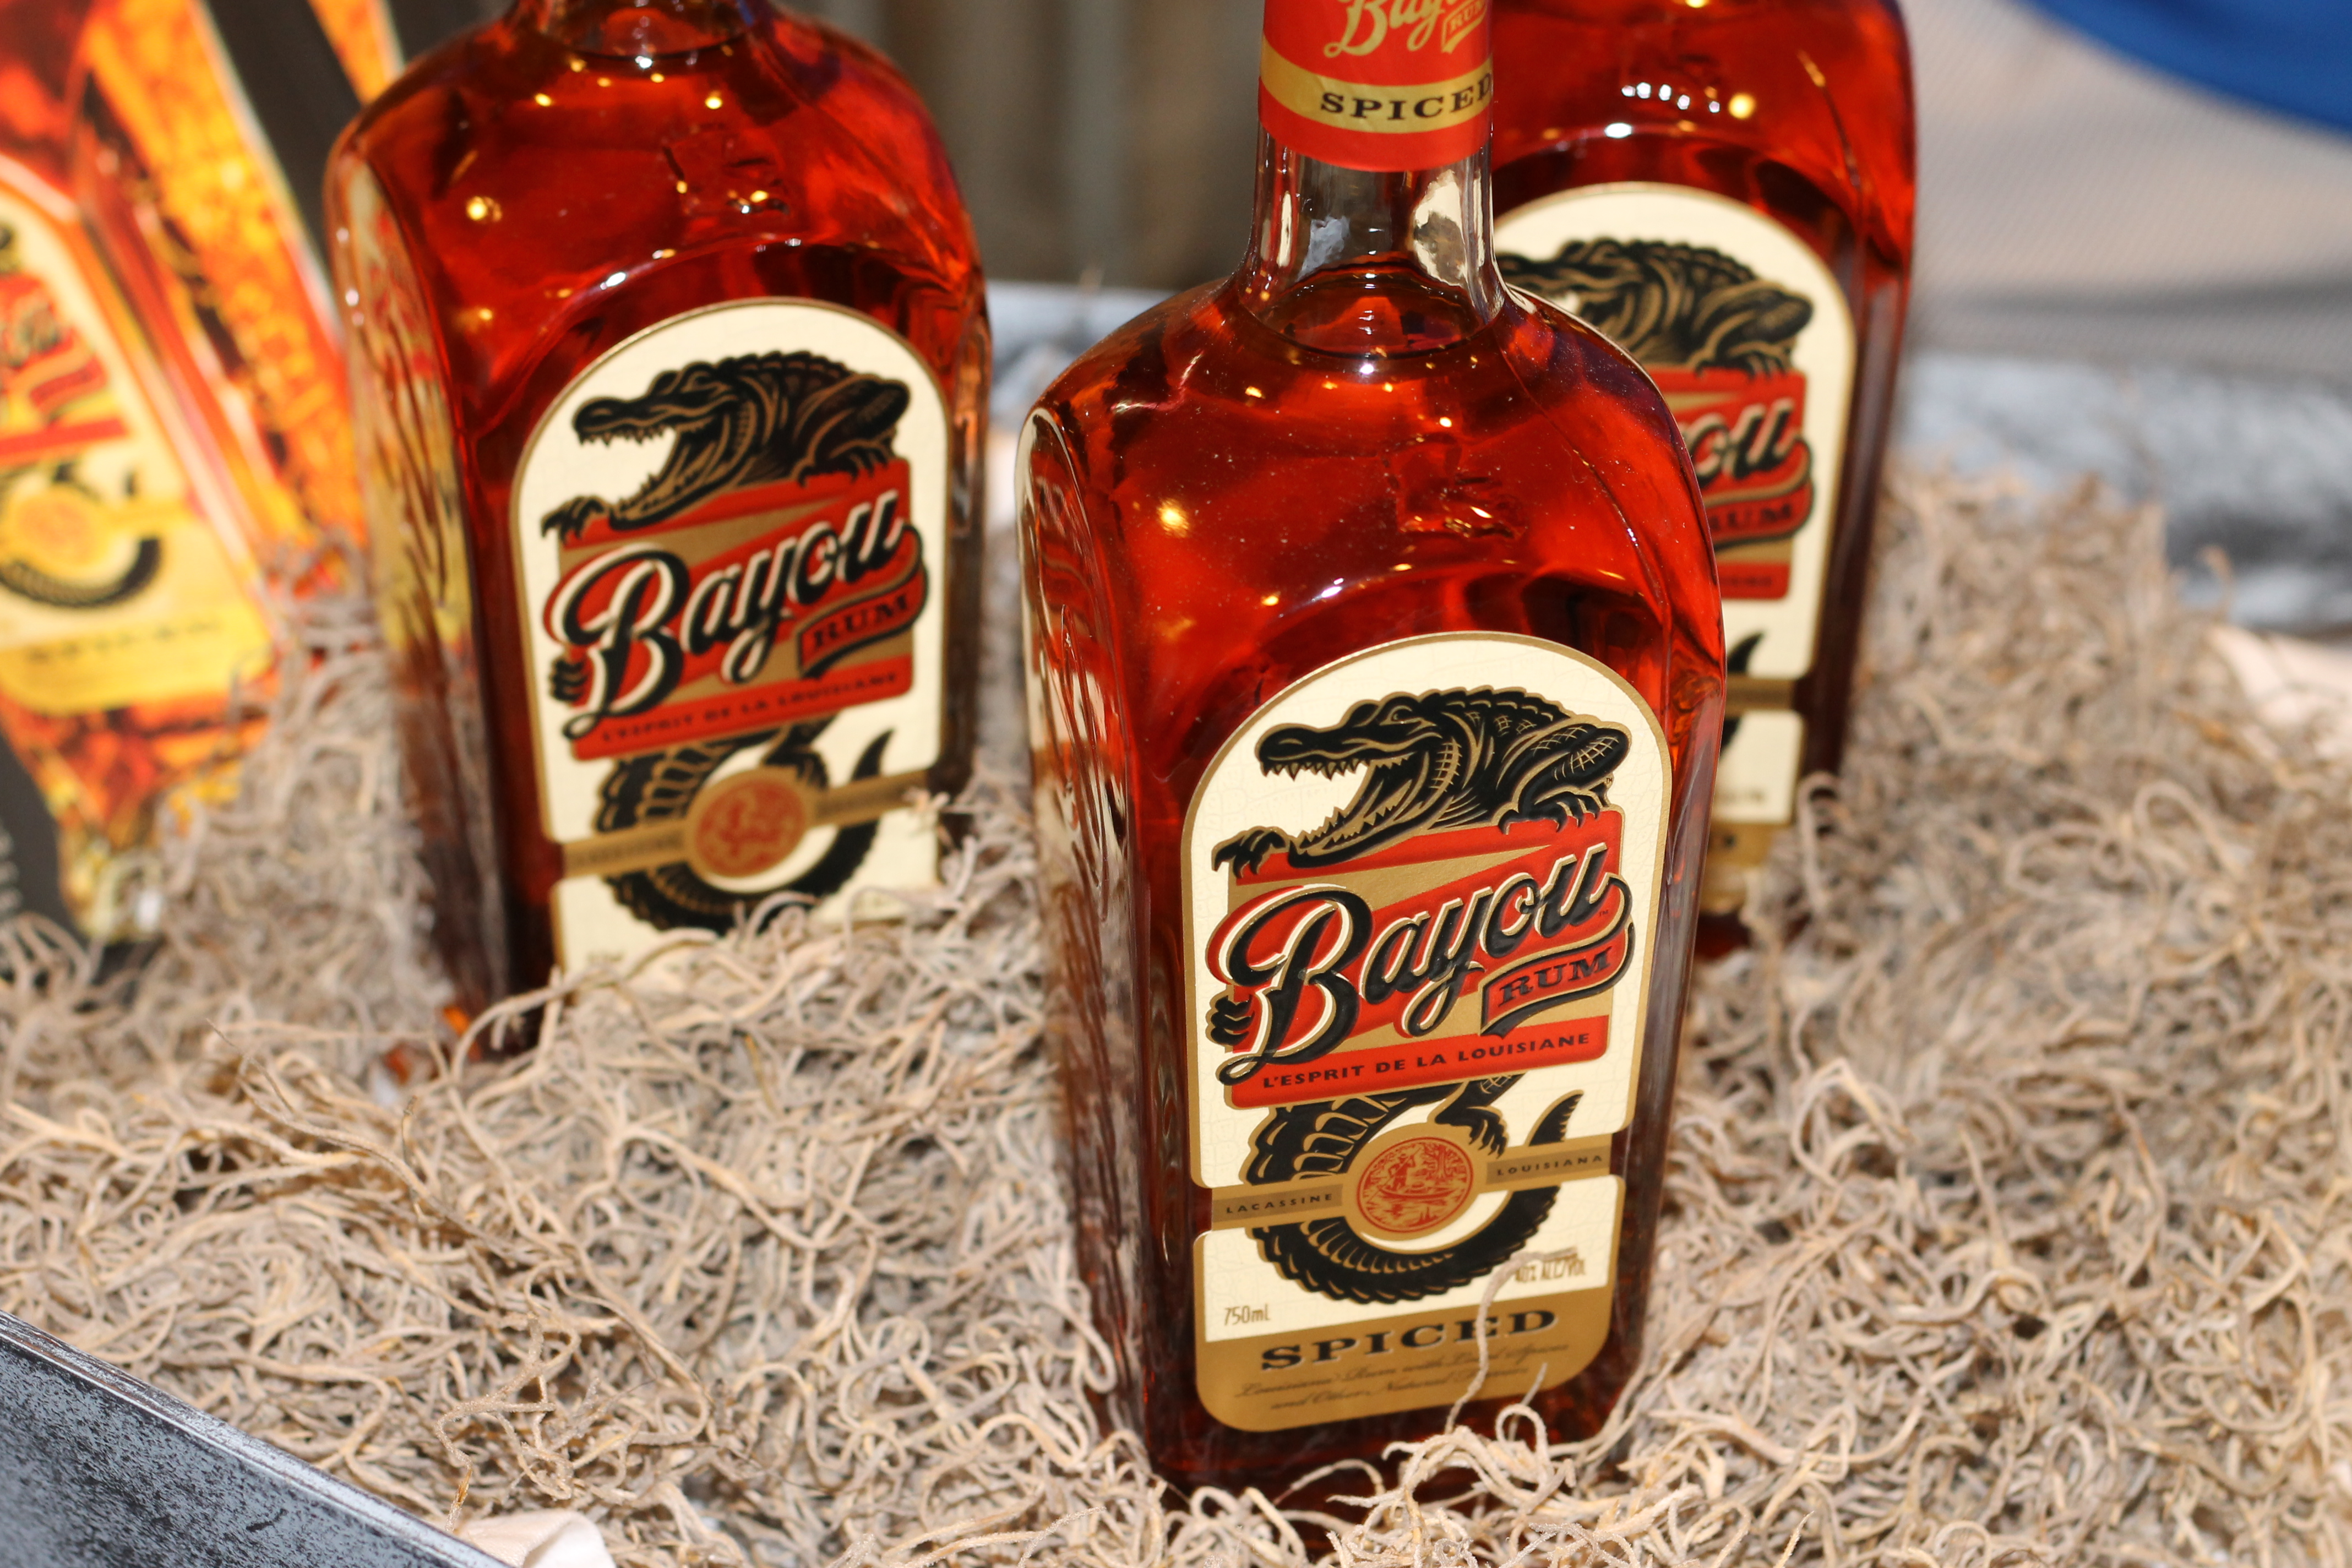 Louisiana's Bayou Rum Launches at Tales of the Cocktail 2013